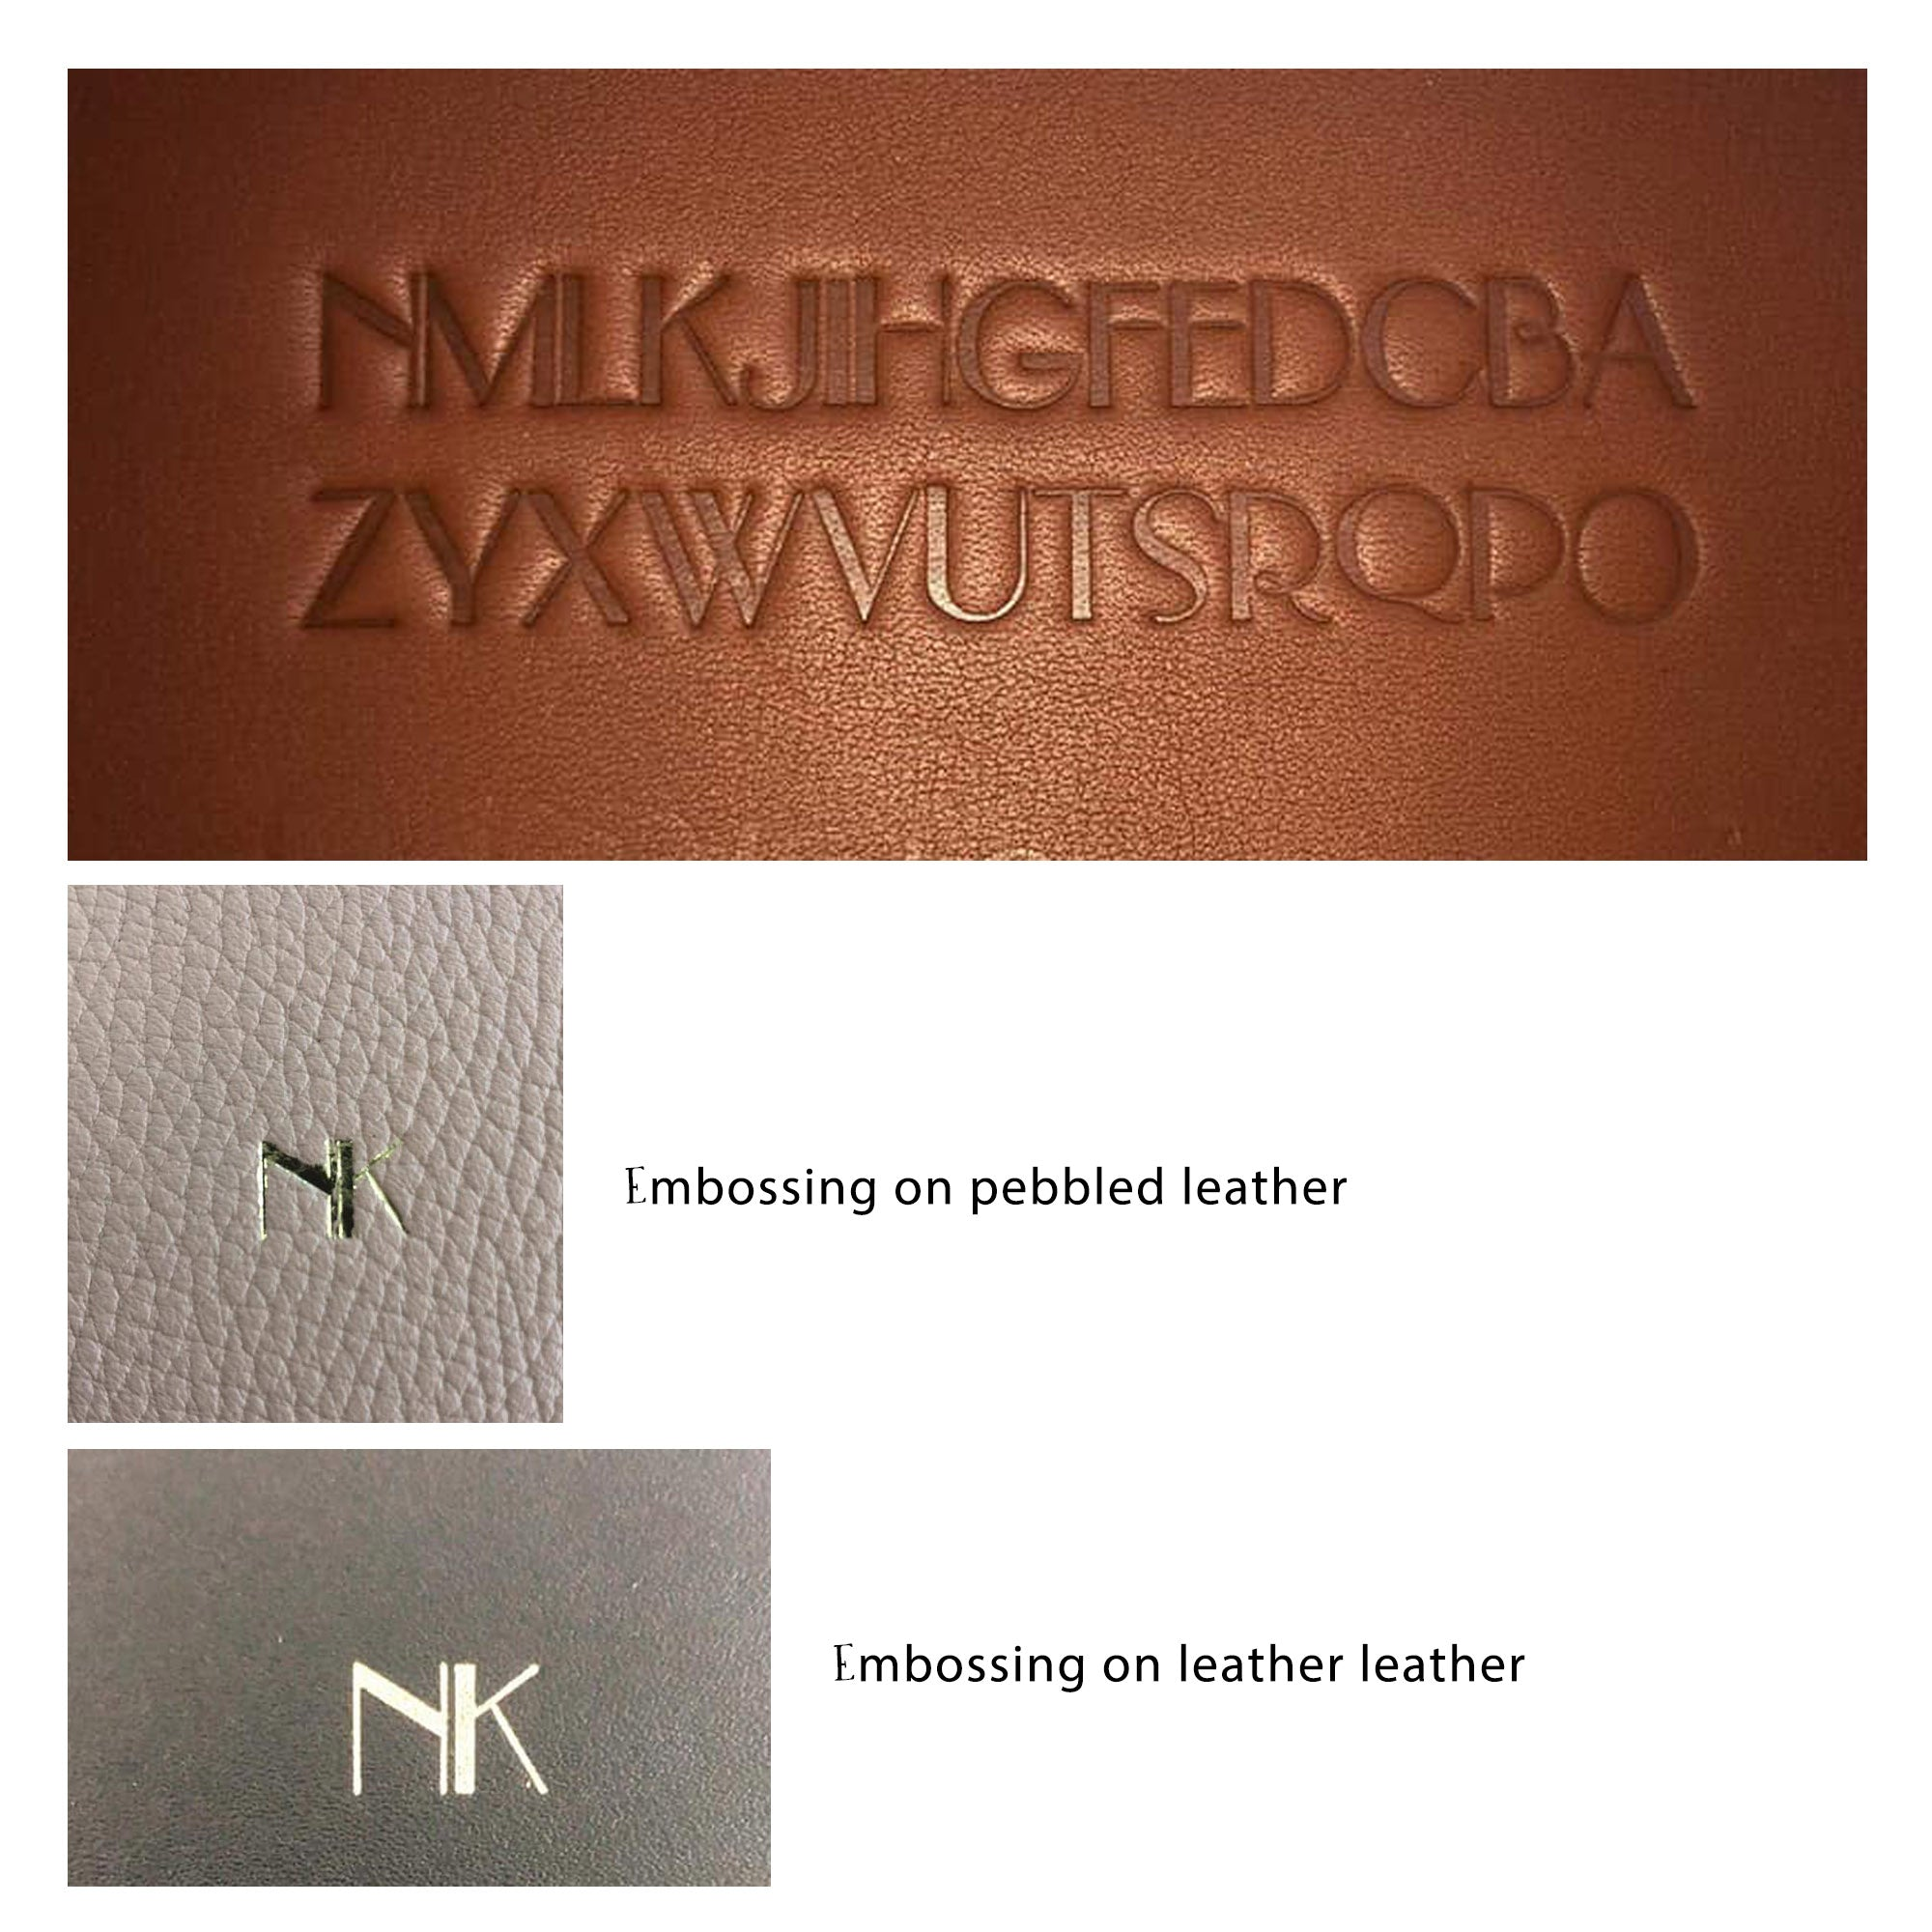 Embossing add-on